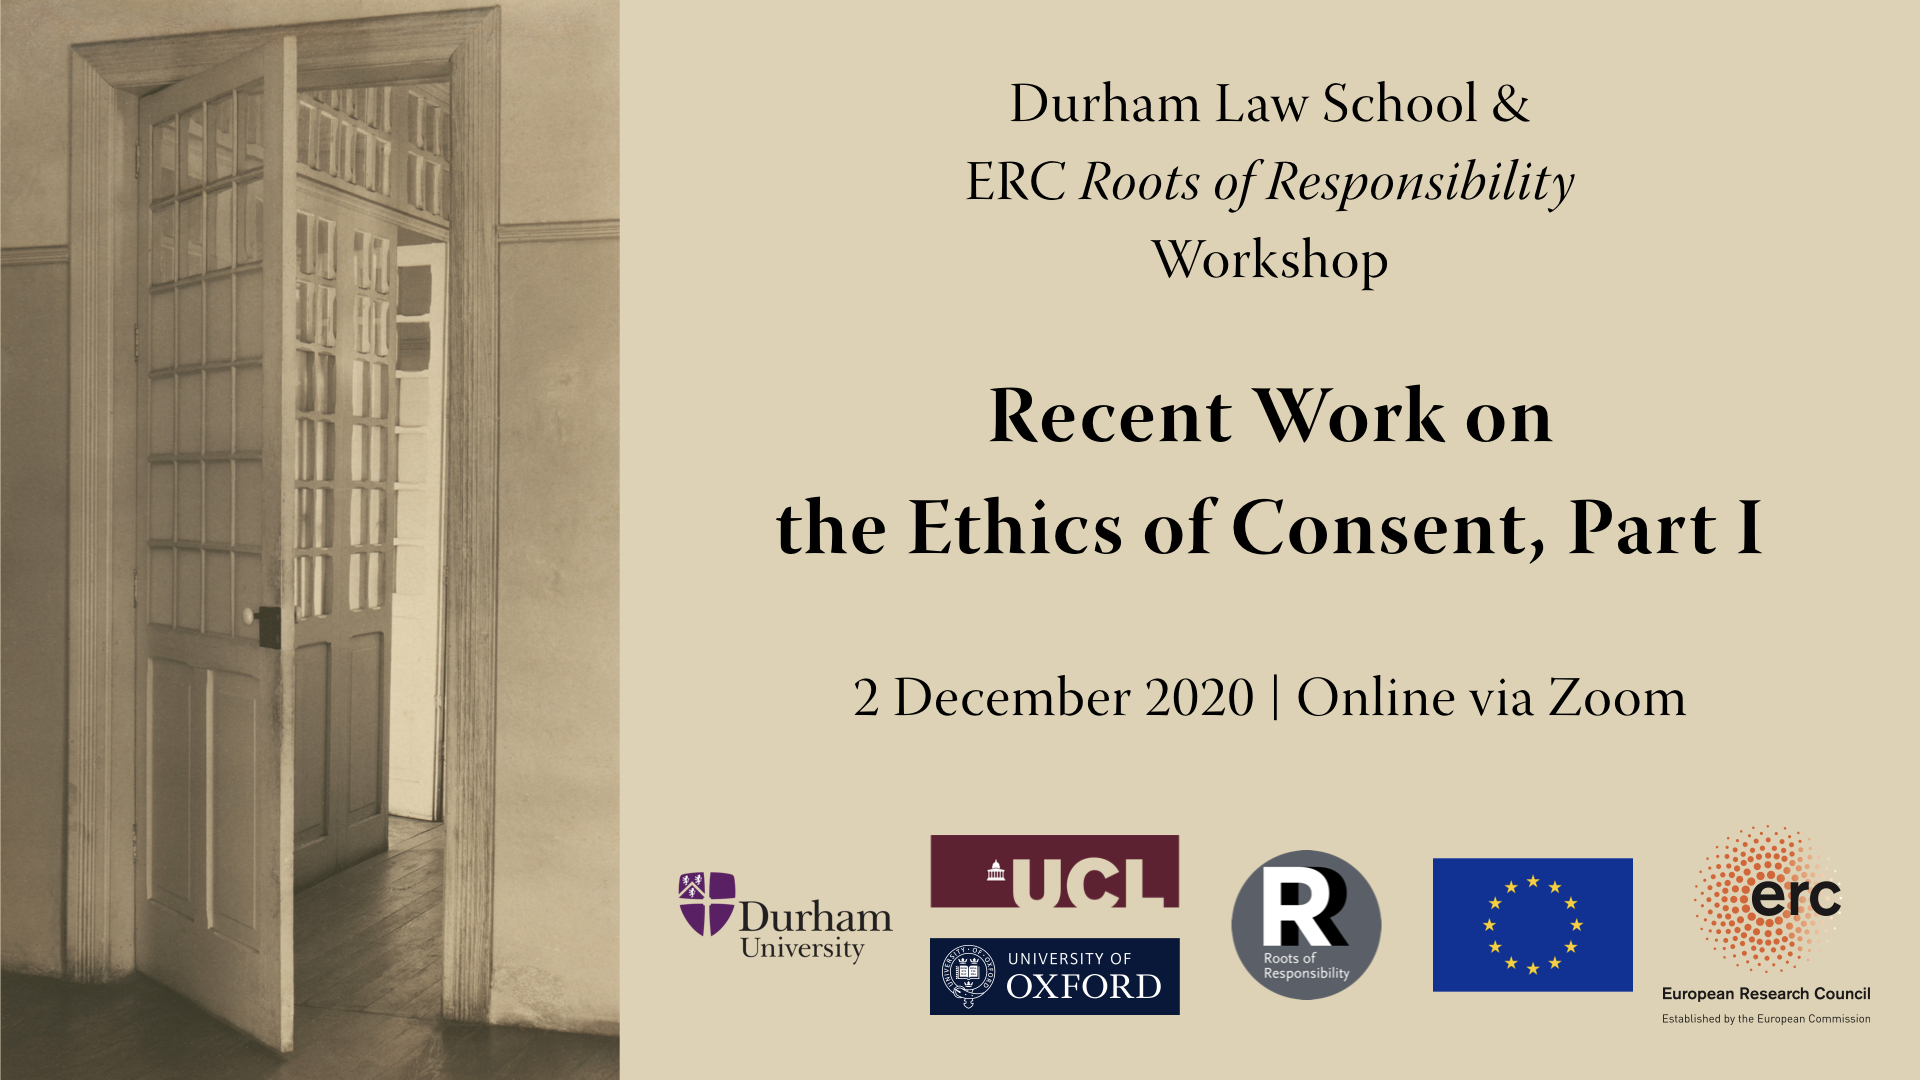 Durham & ERC RoR WS – Recent Work on the Ethics of Consent, Part I